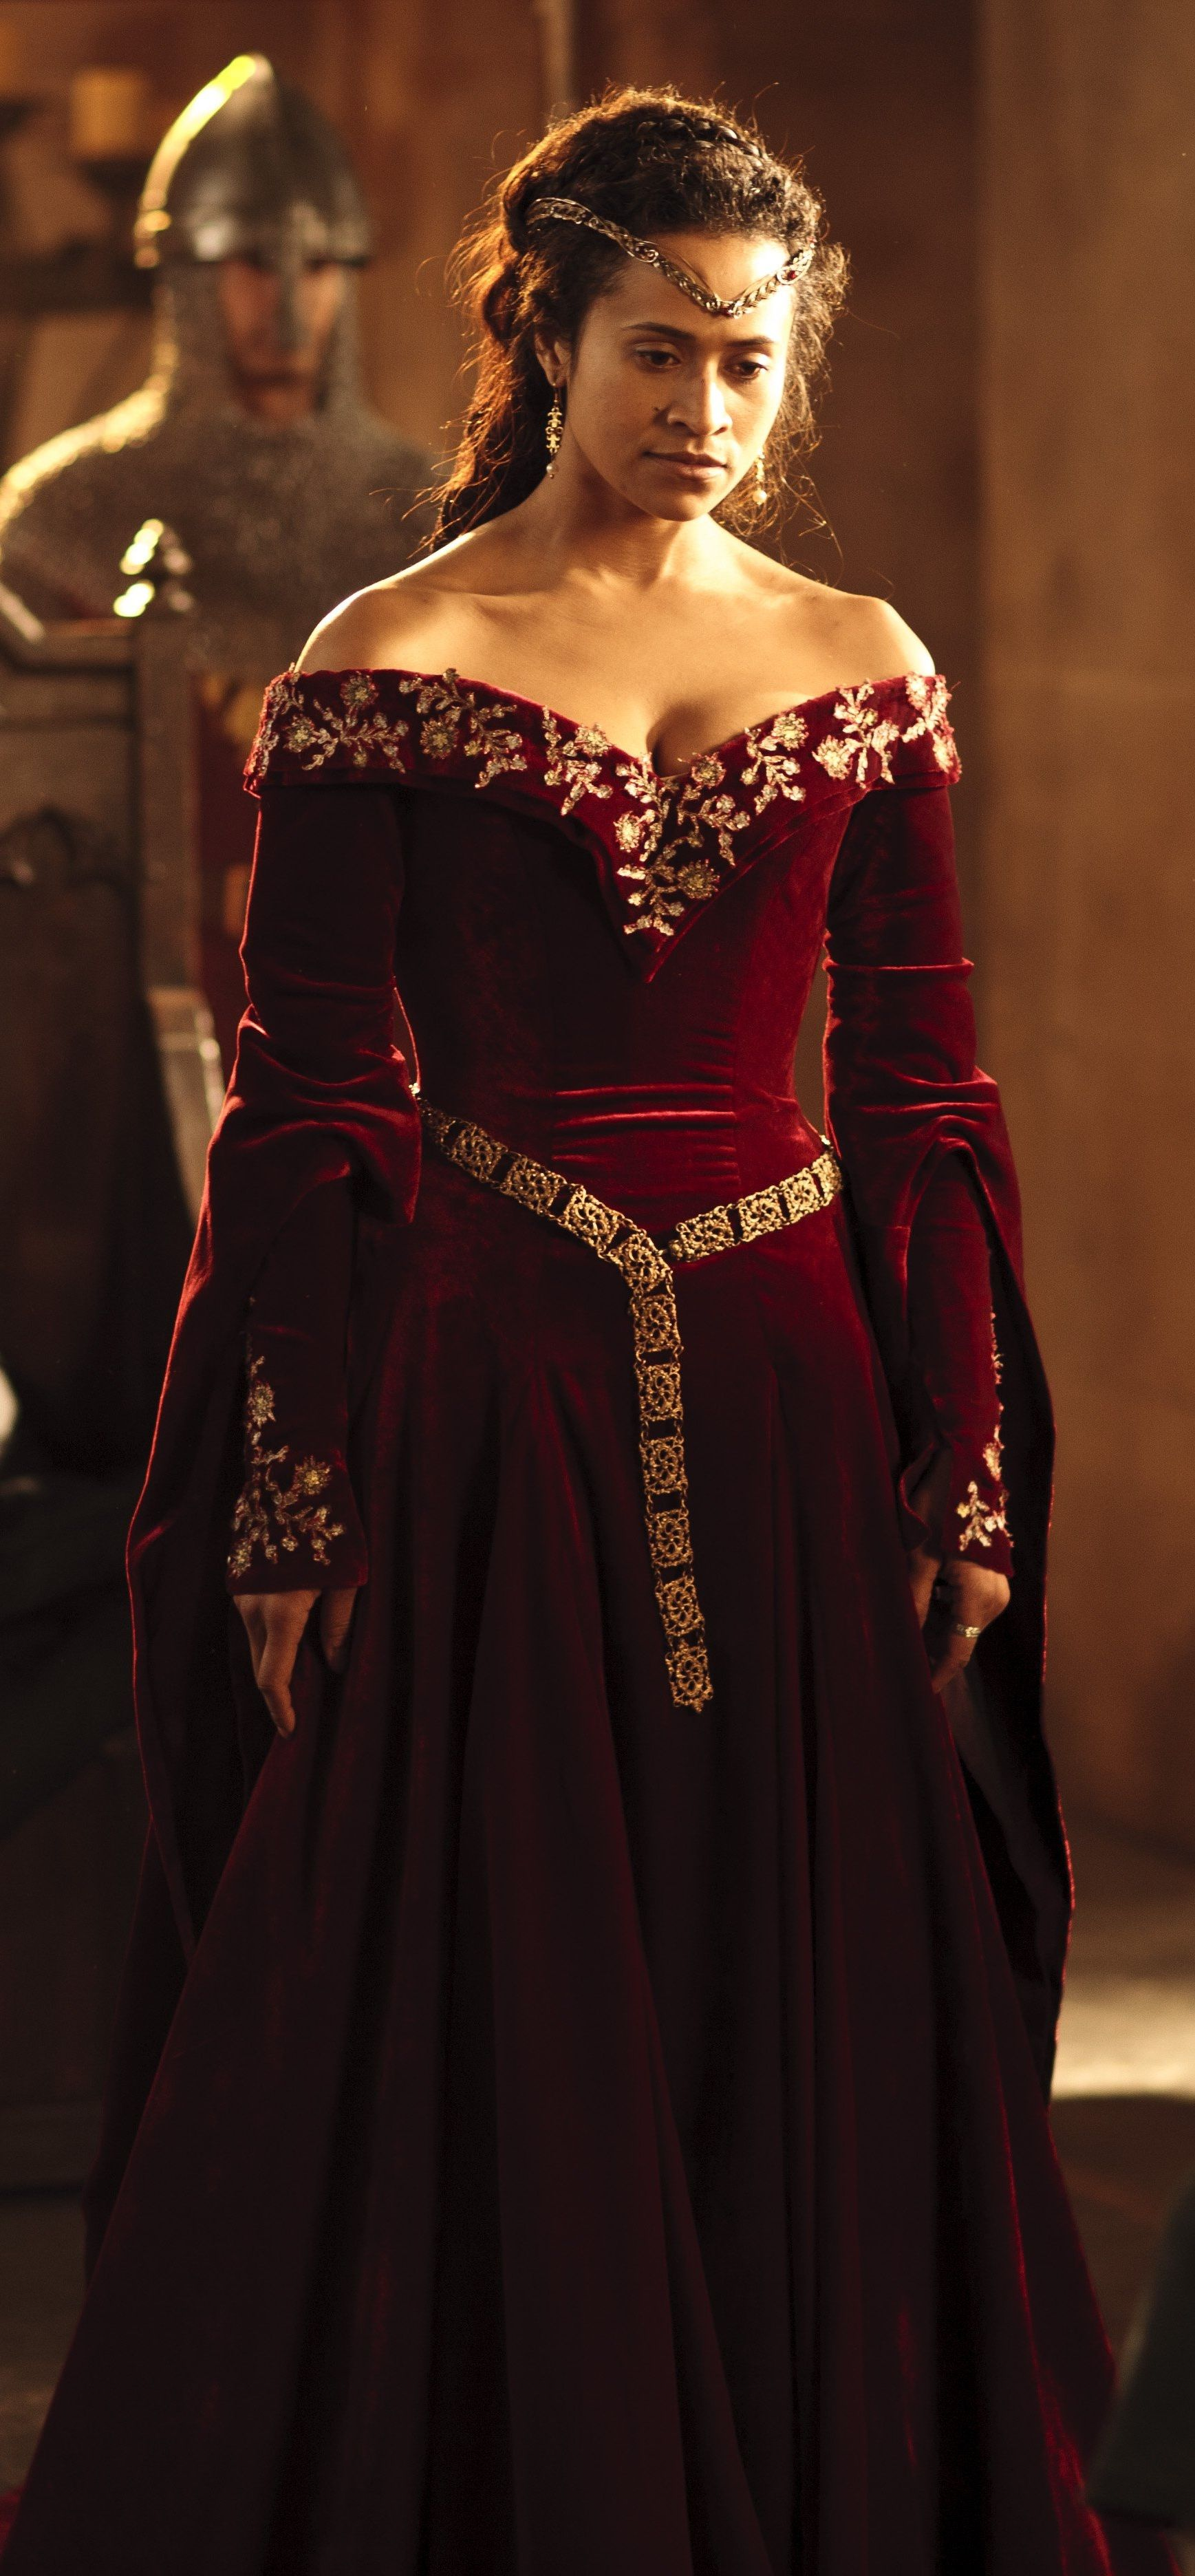 Queen Guinevere S Red Formal Dress Merlin Woven Magic